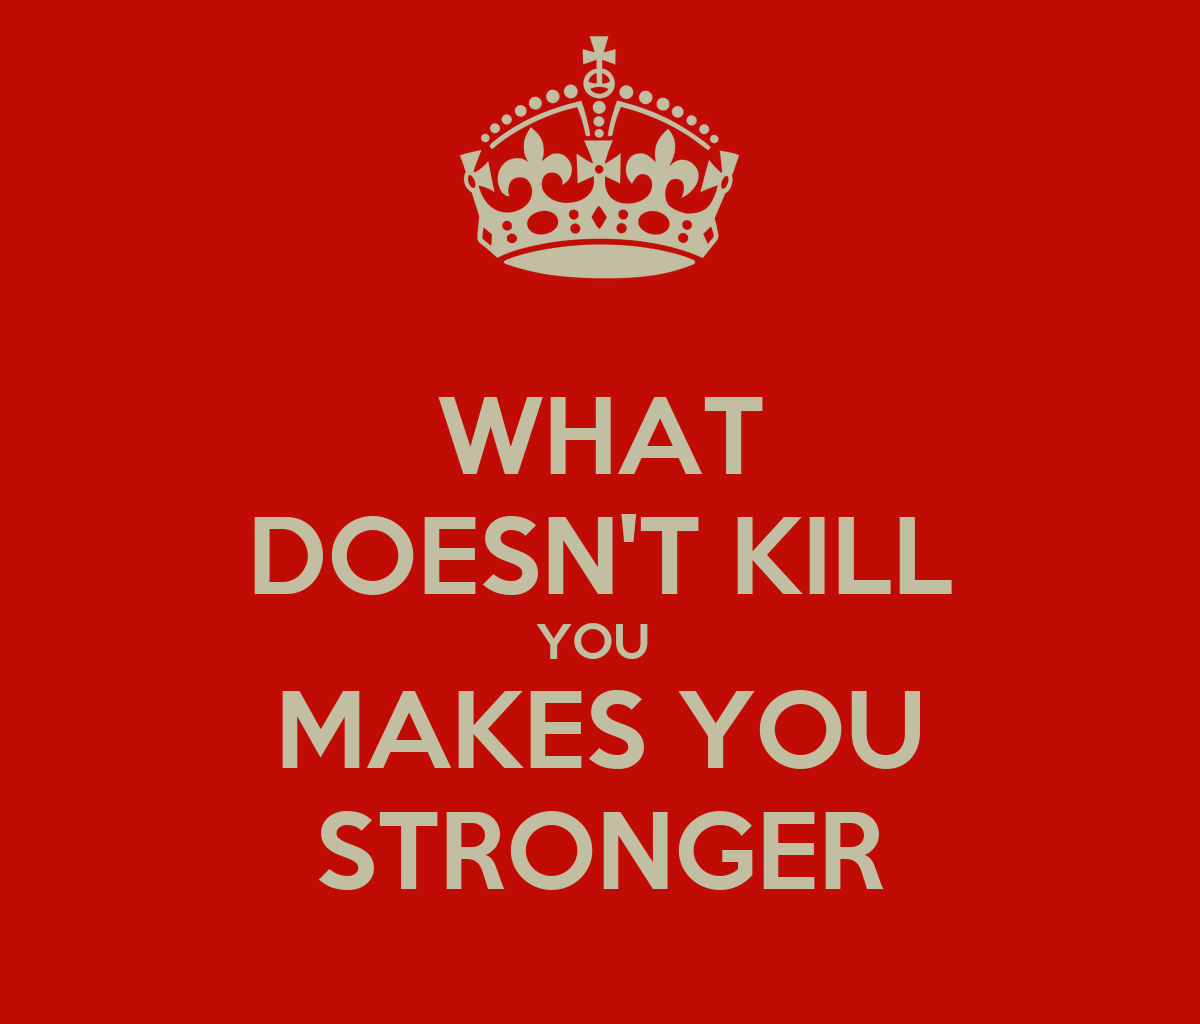 """That which does not kill us makes us stronger."""